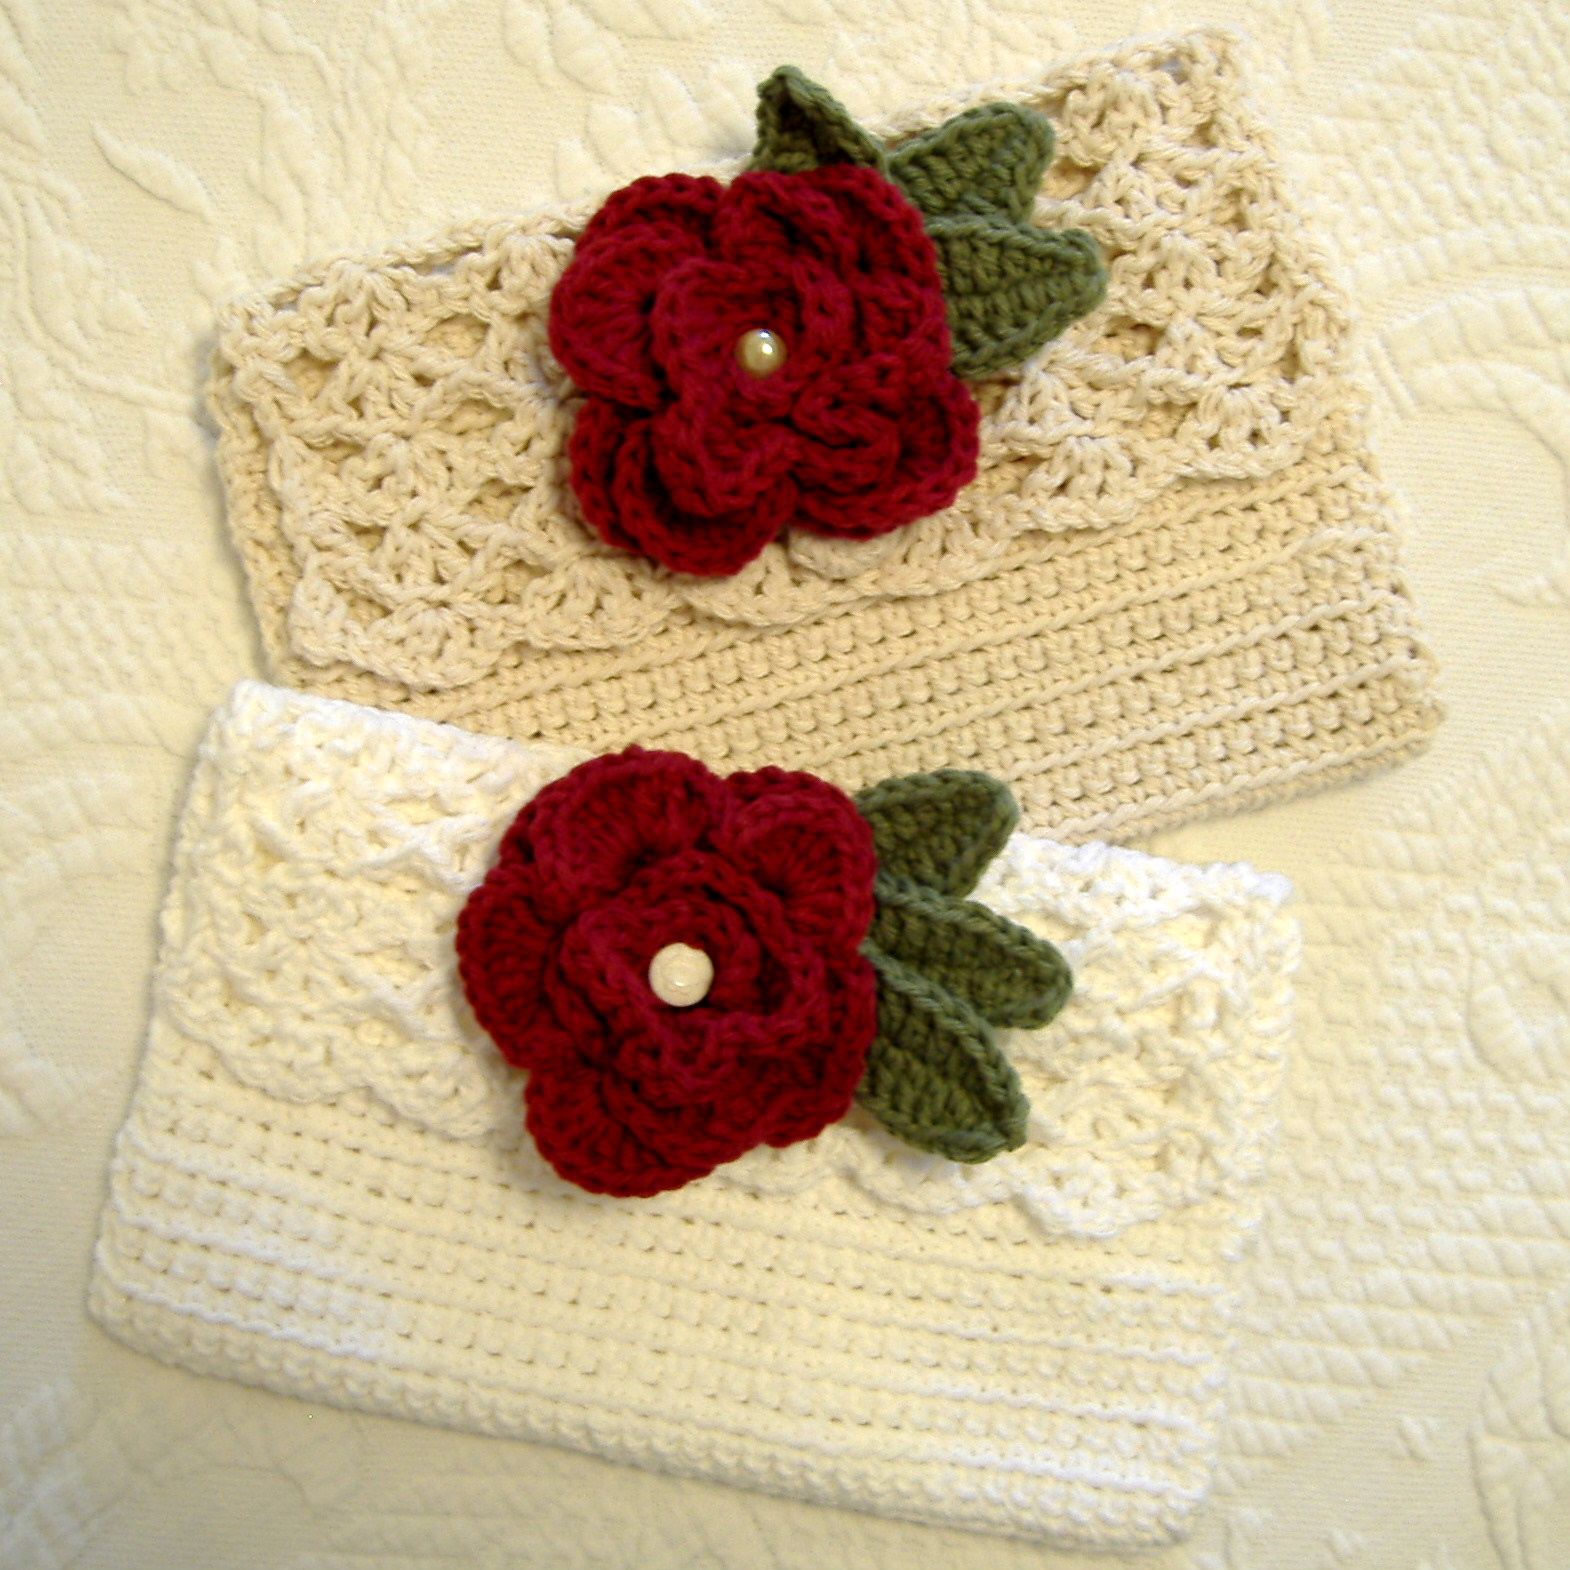 Crocheting Purses : Crochet Purse Patterns